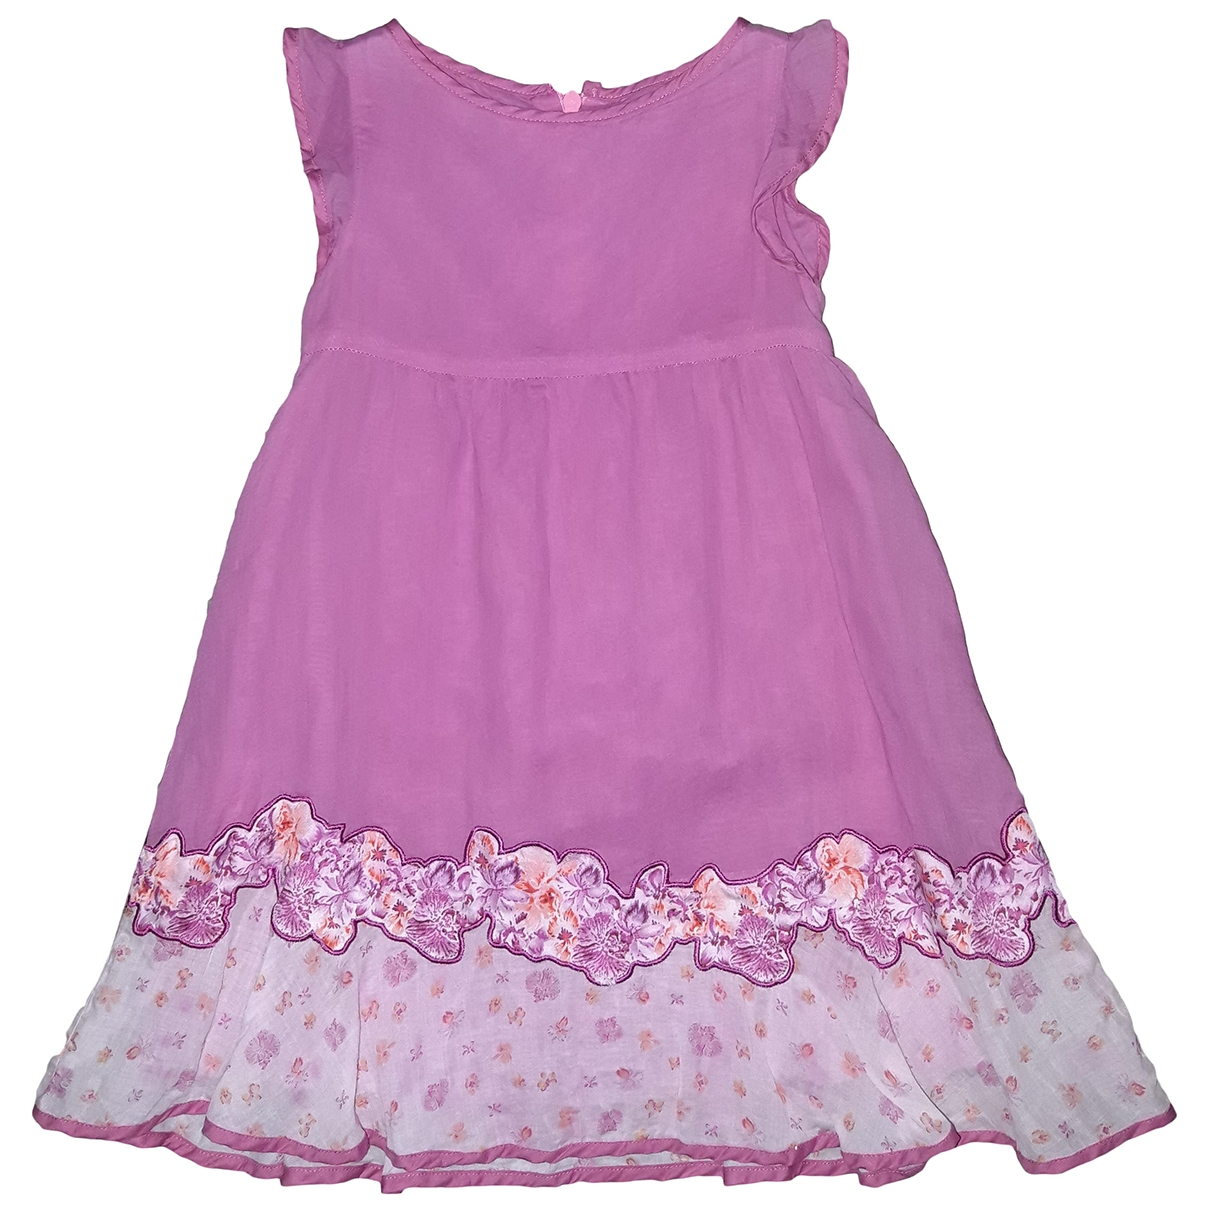 Versace \N Pink Cotton dress for Kids 2 years - up to 86cm FR